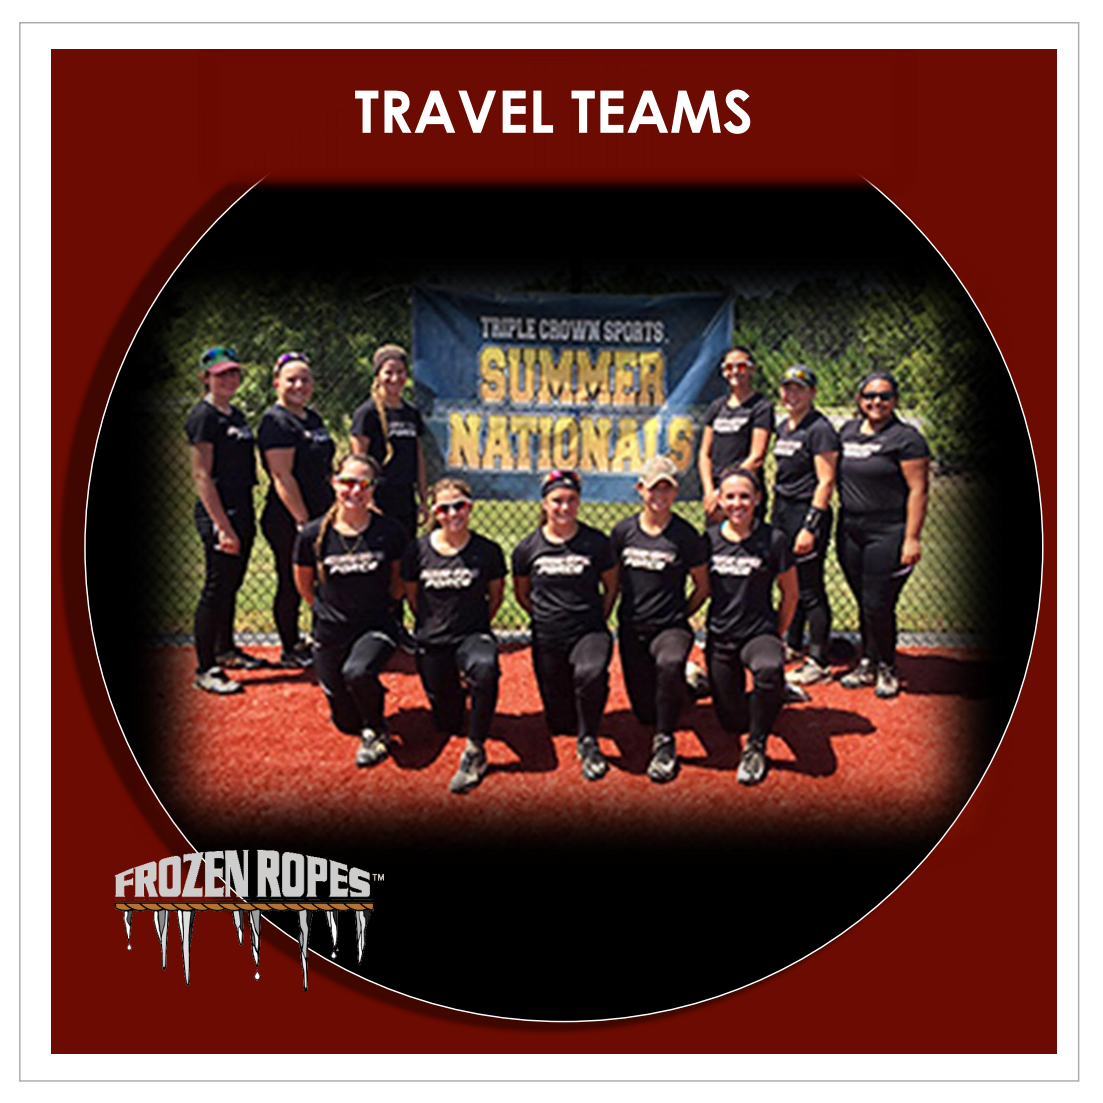 Frozen Ropes Travel Teams